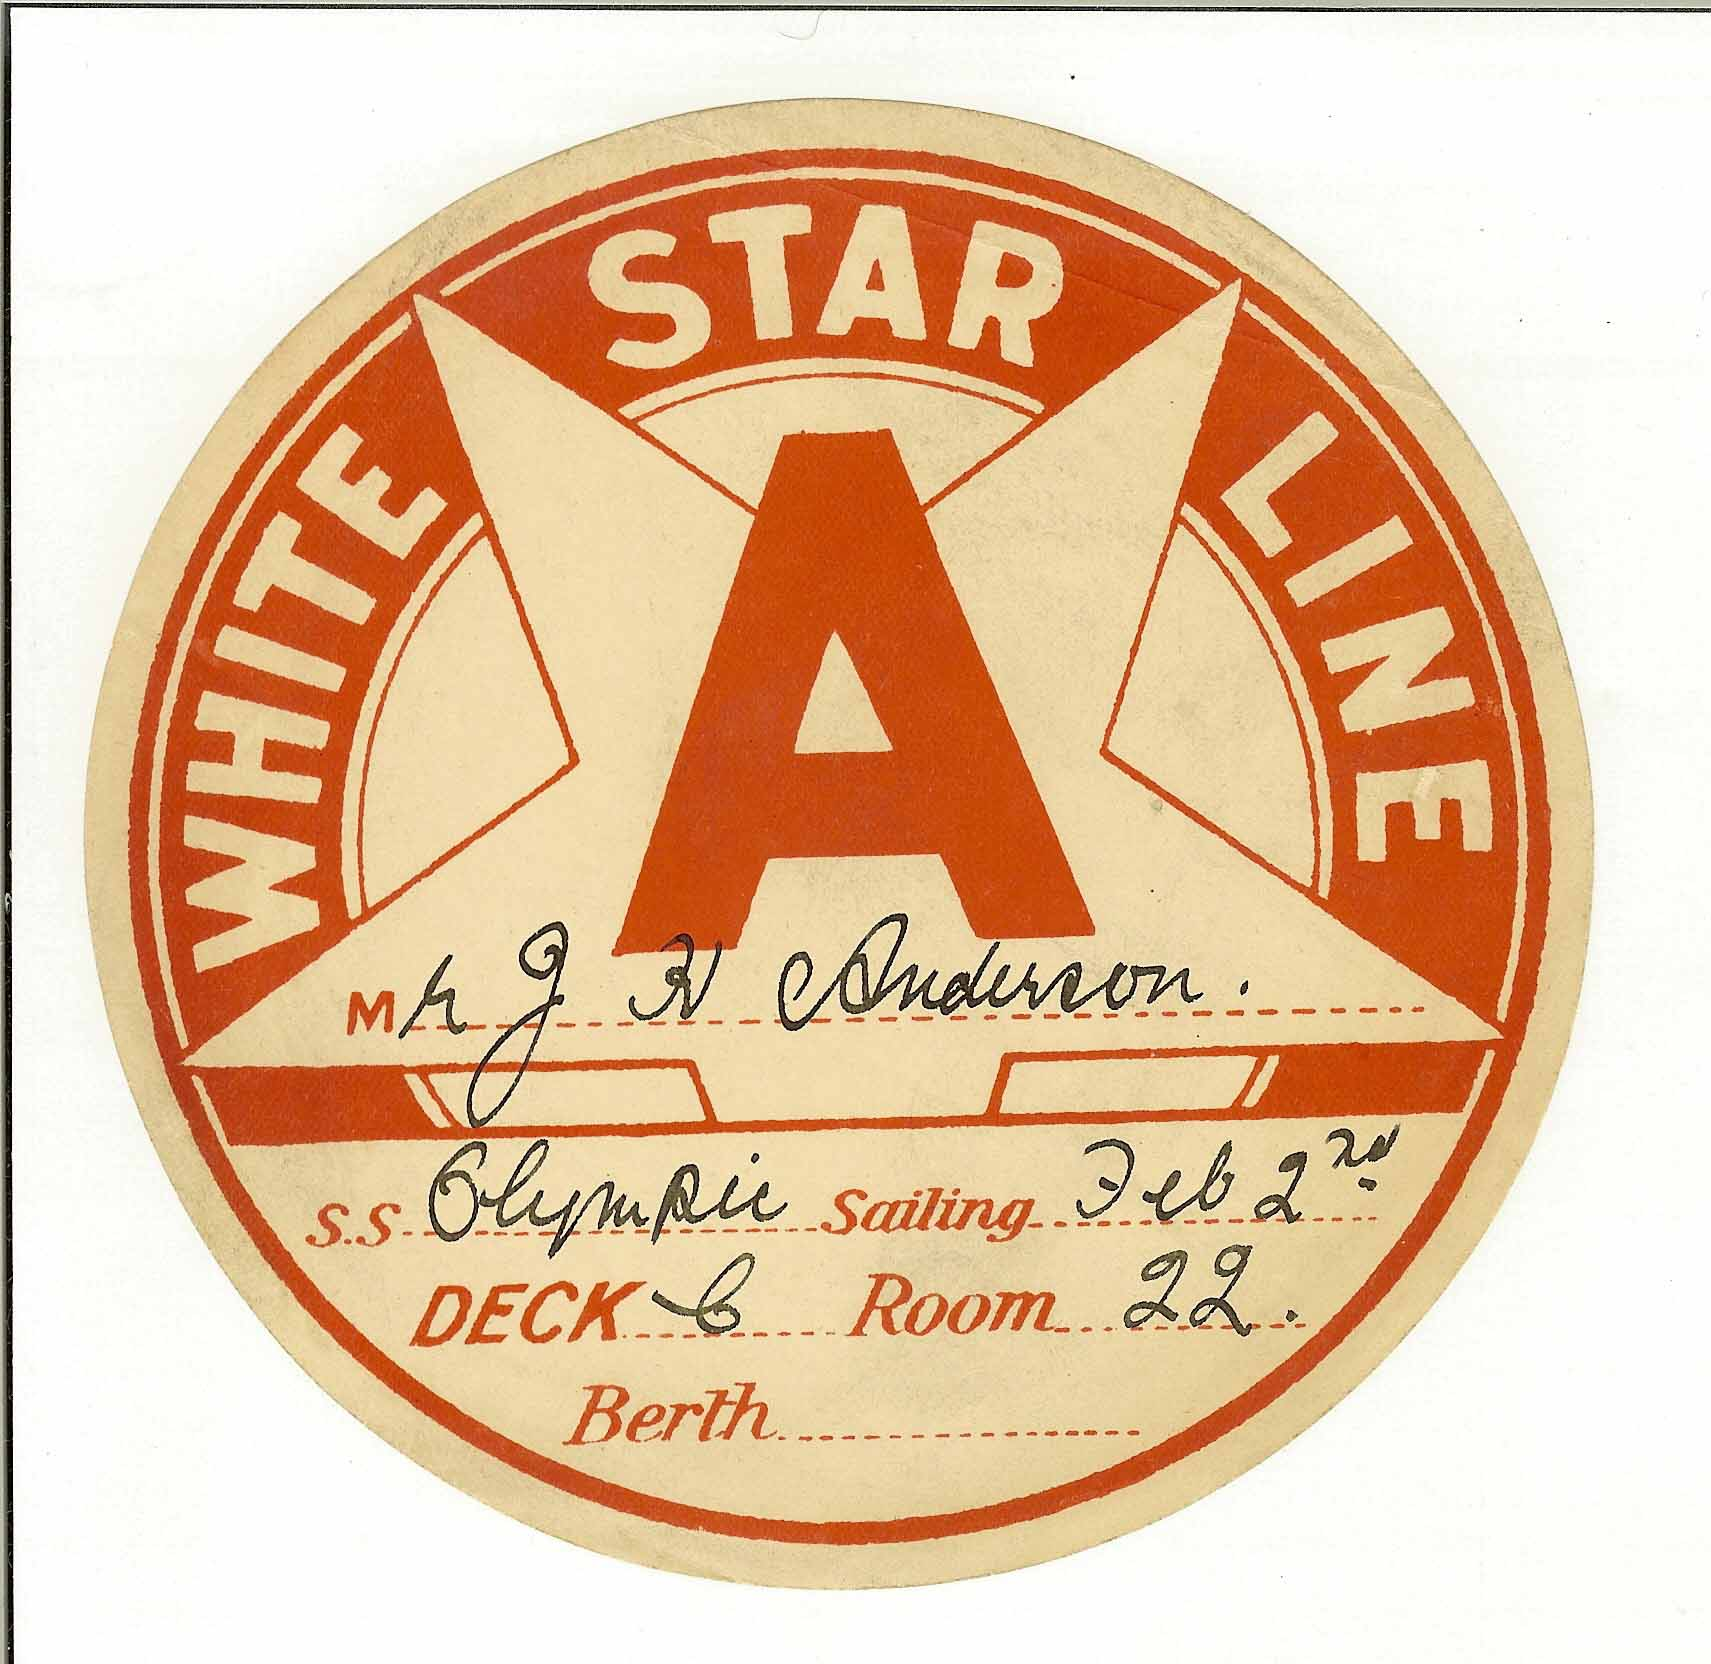 White Star Baggage Label